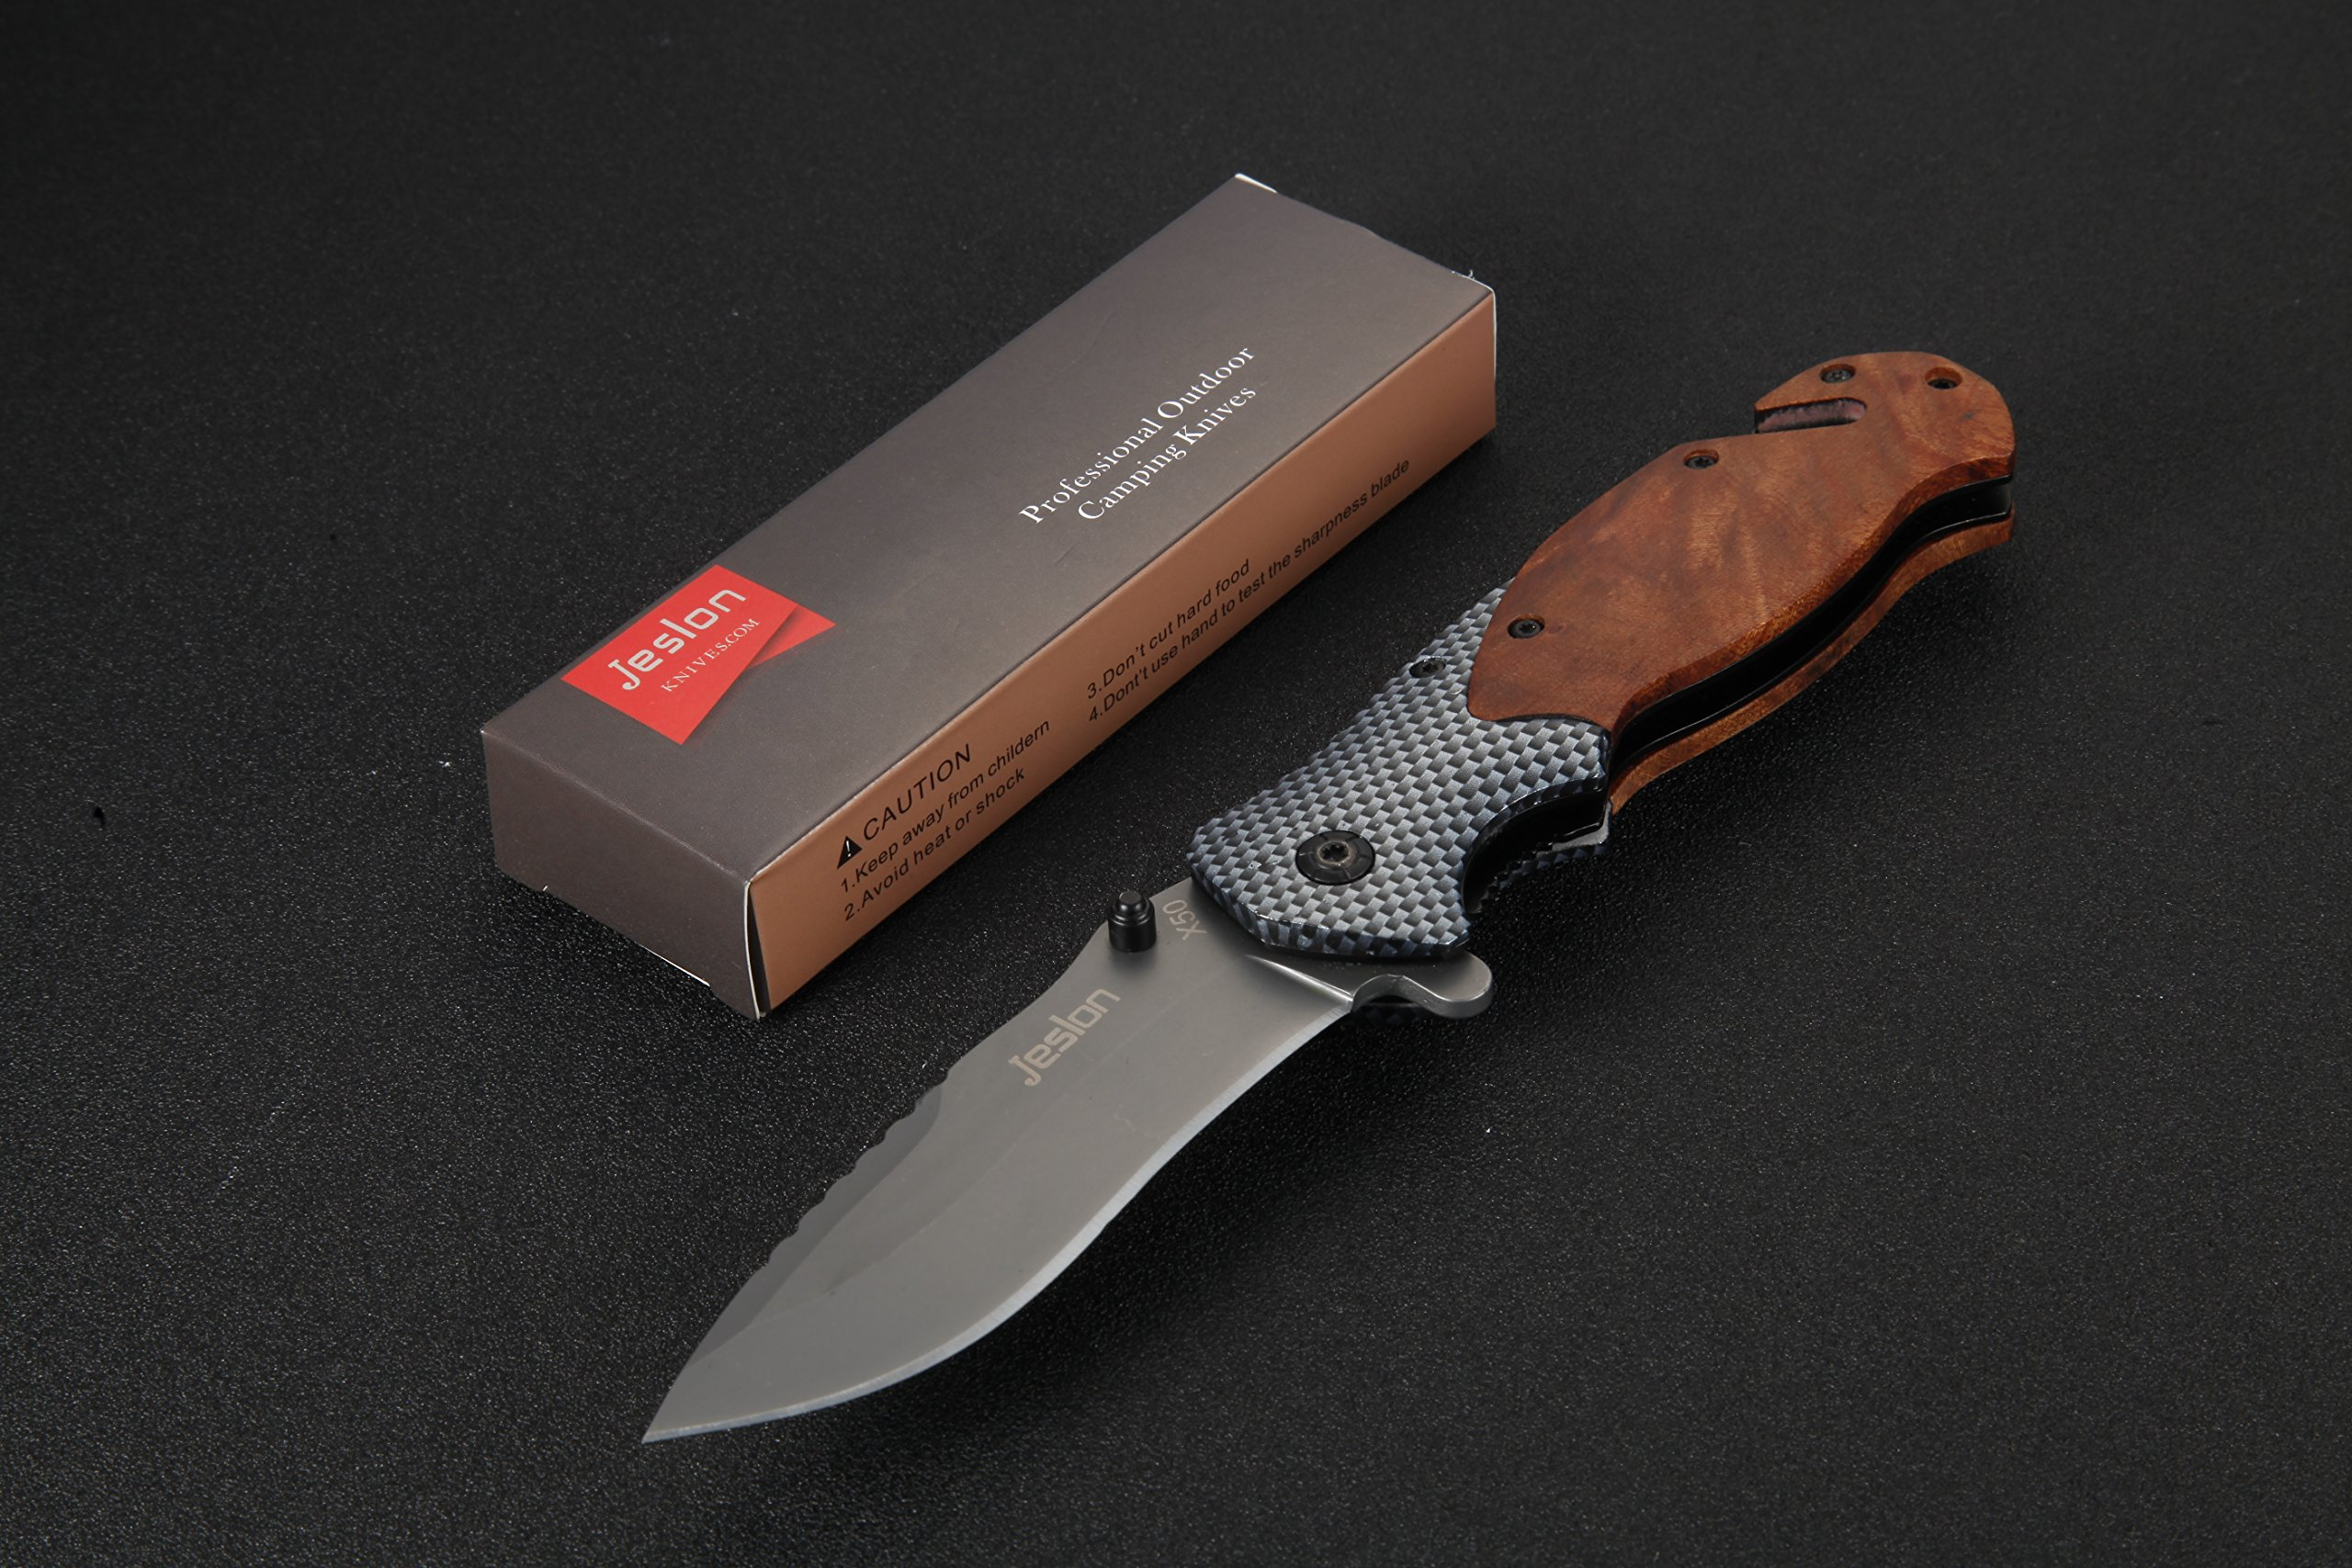 Jeslon Spring Assisted Opening Tactical Folding Pocket Knife, Wood Handle 440C 57HRC Blade Good for Camping Survival and outdoor Activities. by Jeslon (Image #2)